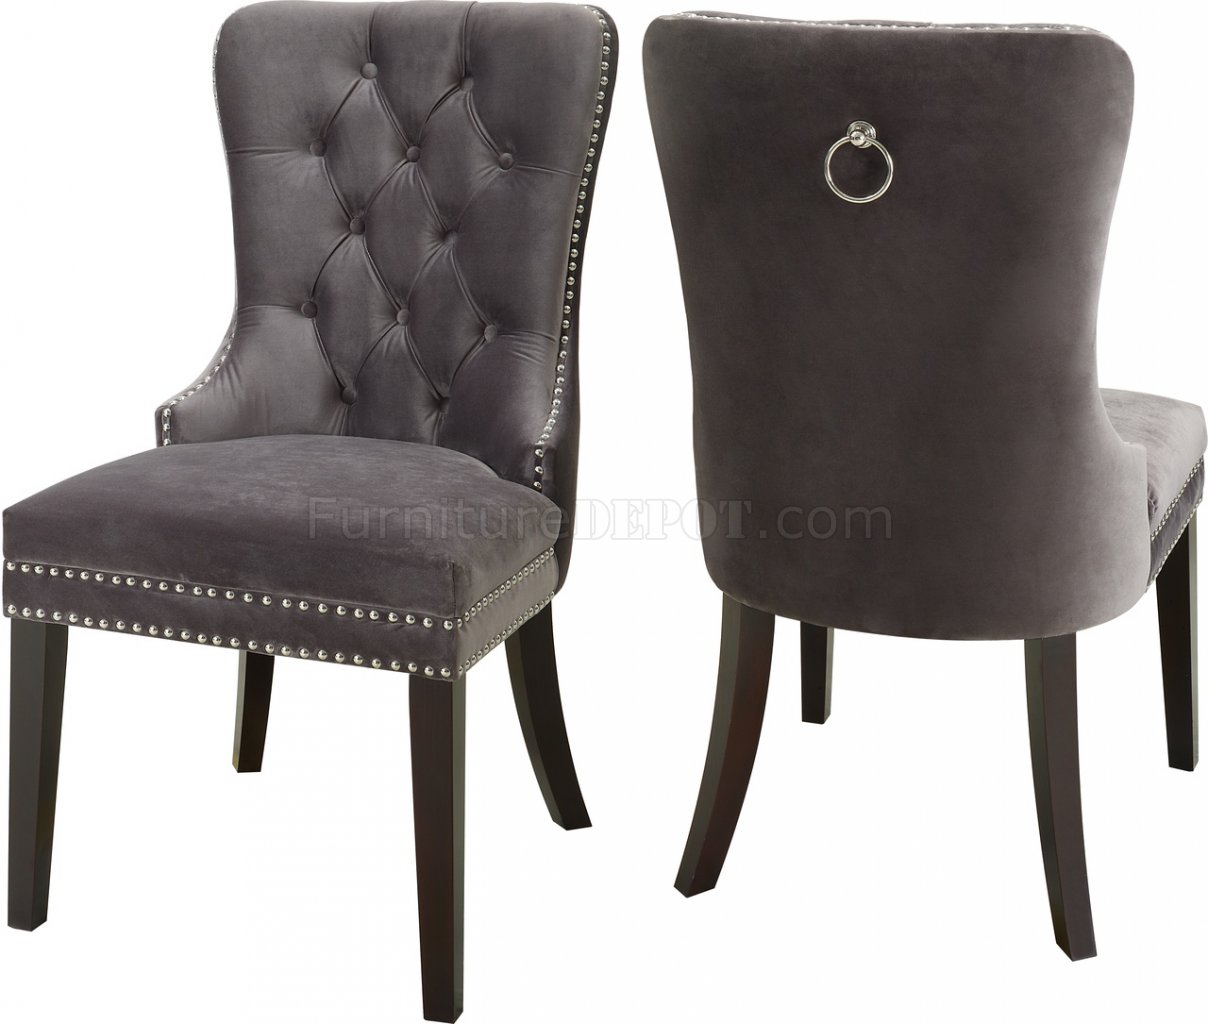 Nikki Dining Chair 740 Set Of 2 Grey Velvet Fabric By Meridian